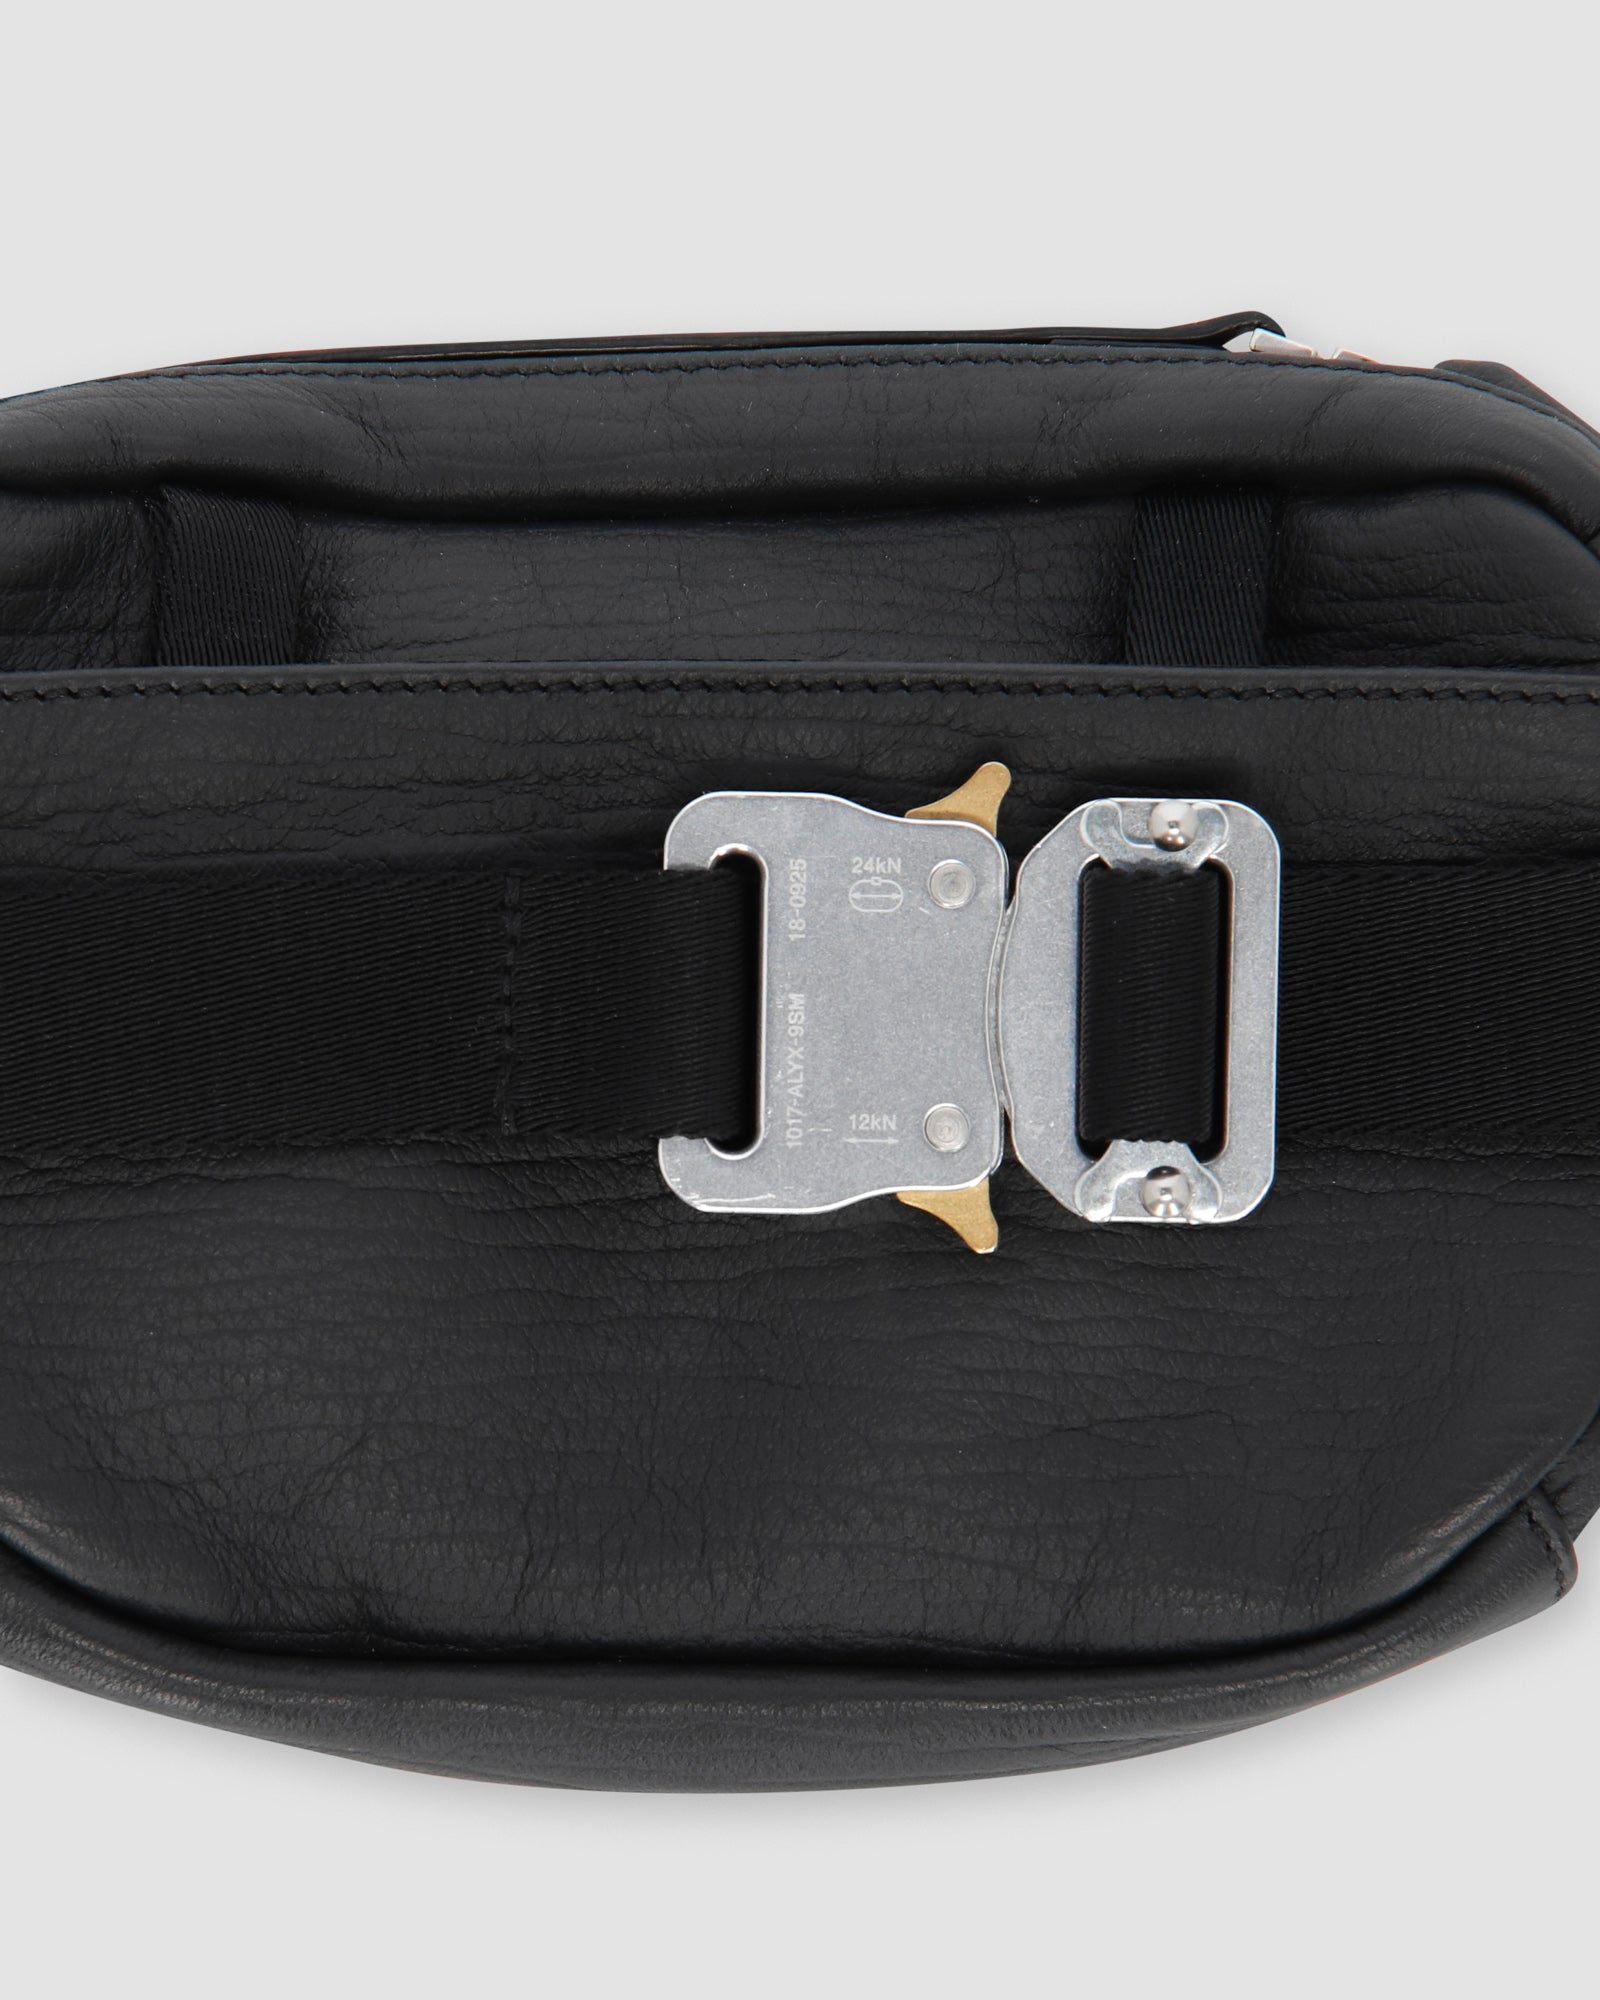 1017 ALYX 9SM | SMALL WAIST POUCH | Bag | Accessories, Bag Online, Bags, Black, F19, Man, Woman